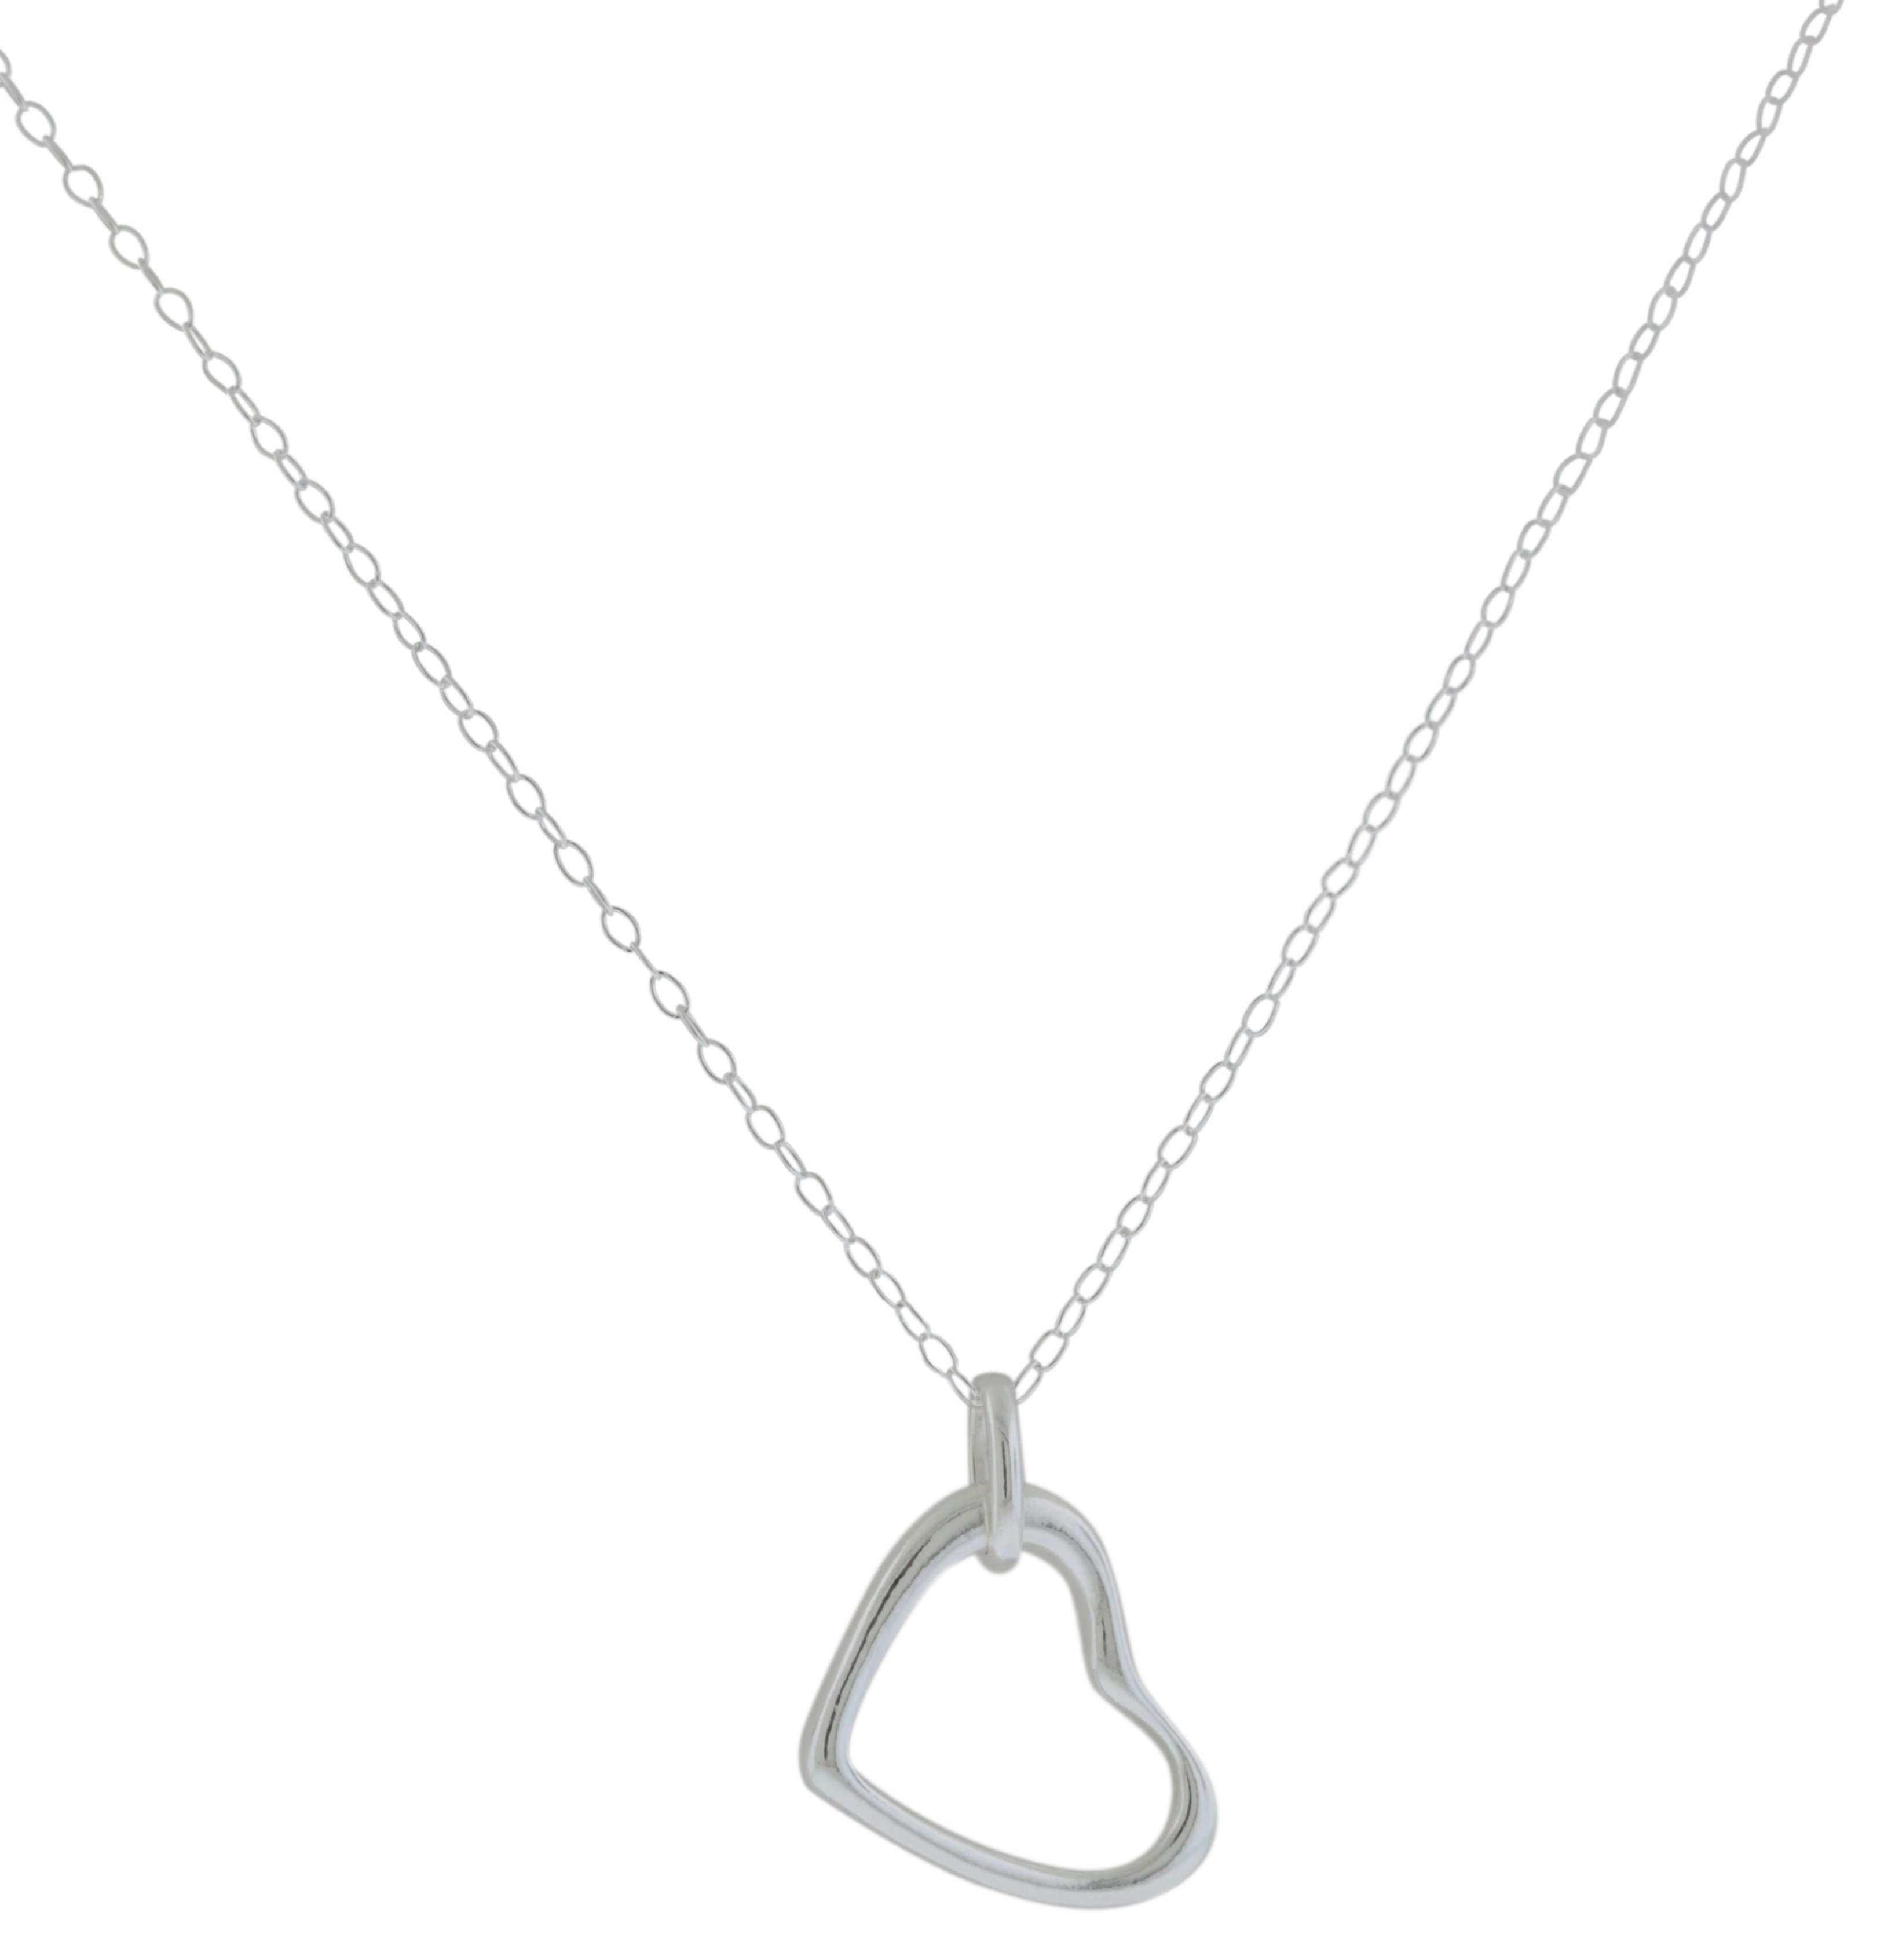 Sterling Silver Open Heart Pendant with Chain - JP1805